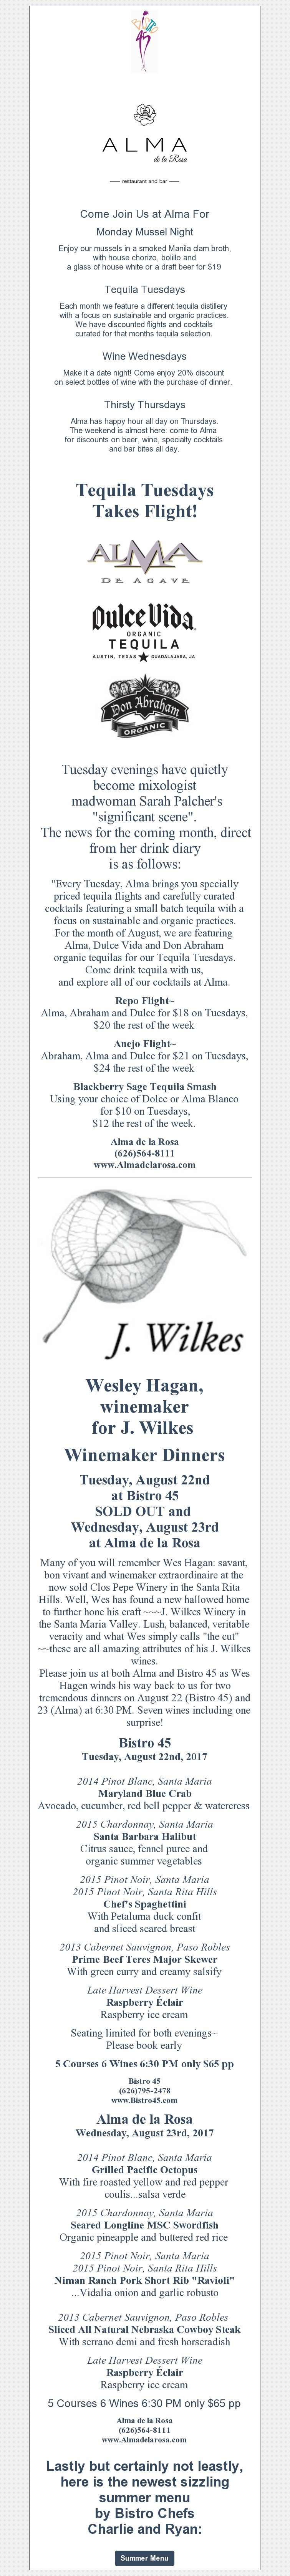 J. Wilkes Wine Dinner Tomorrow at Alma